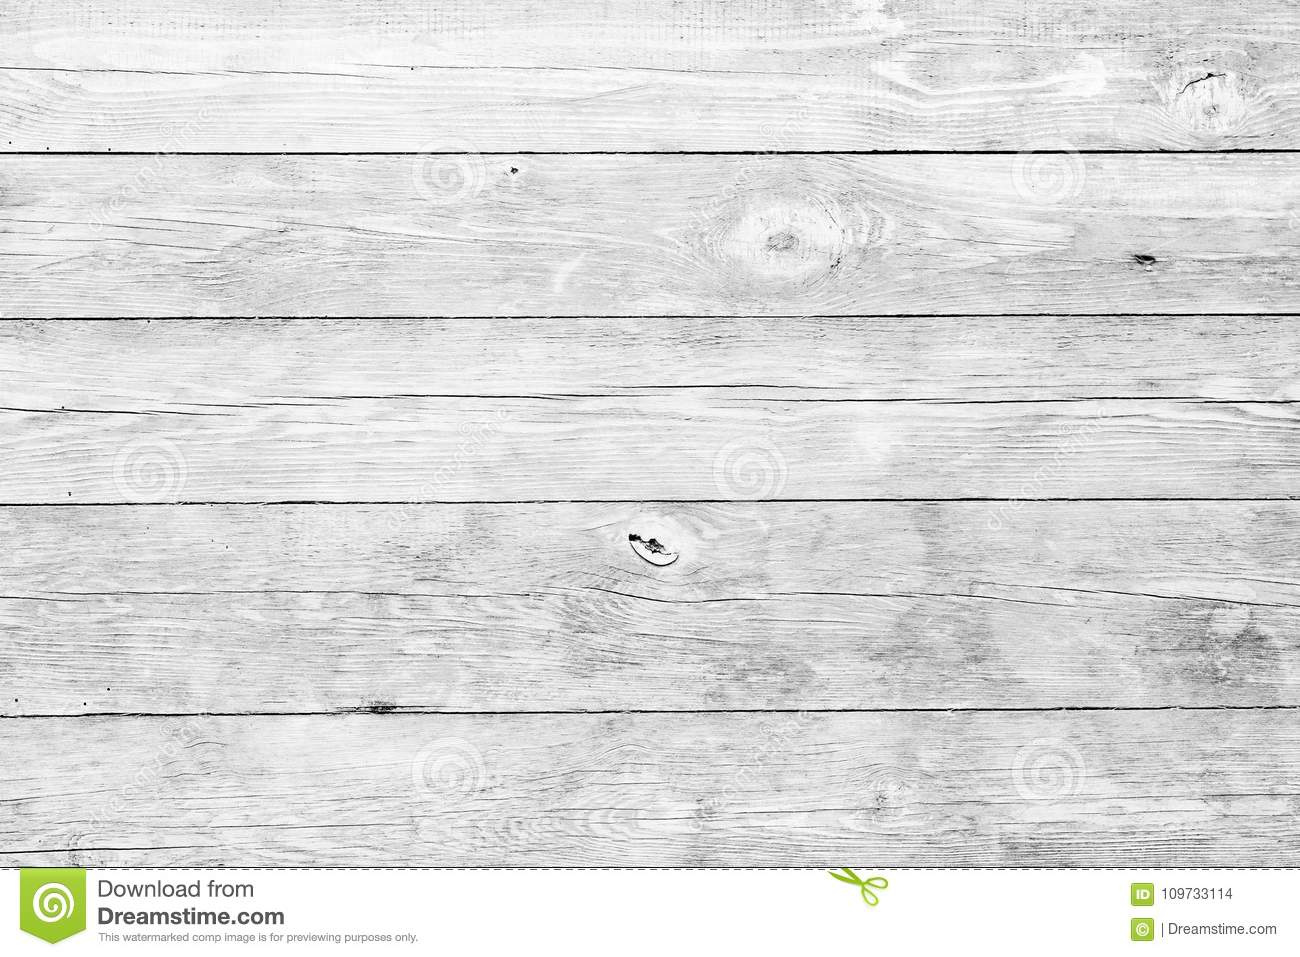 white-wood-planks-background-rustic-white-wood-planks-background-wood-texture-109733114.jpg